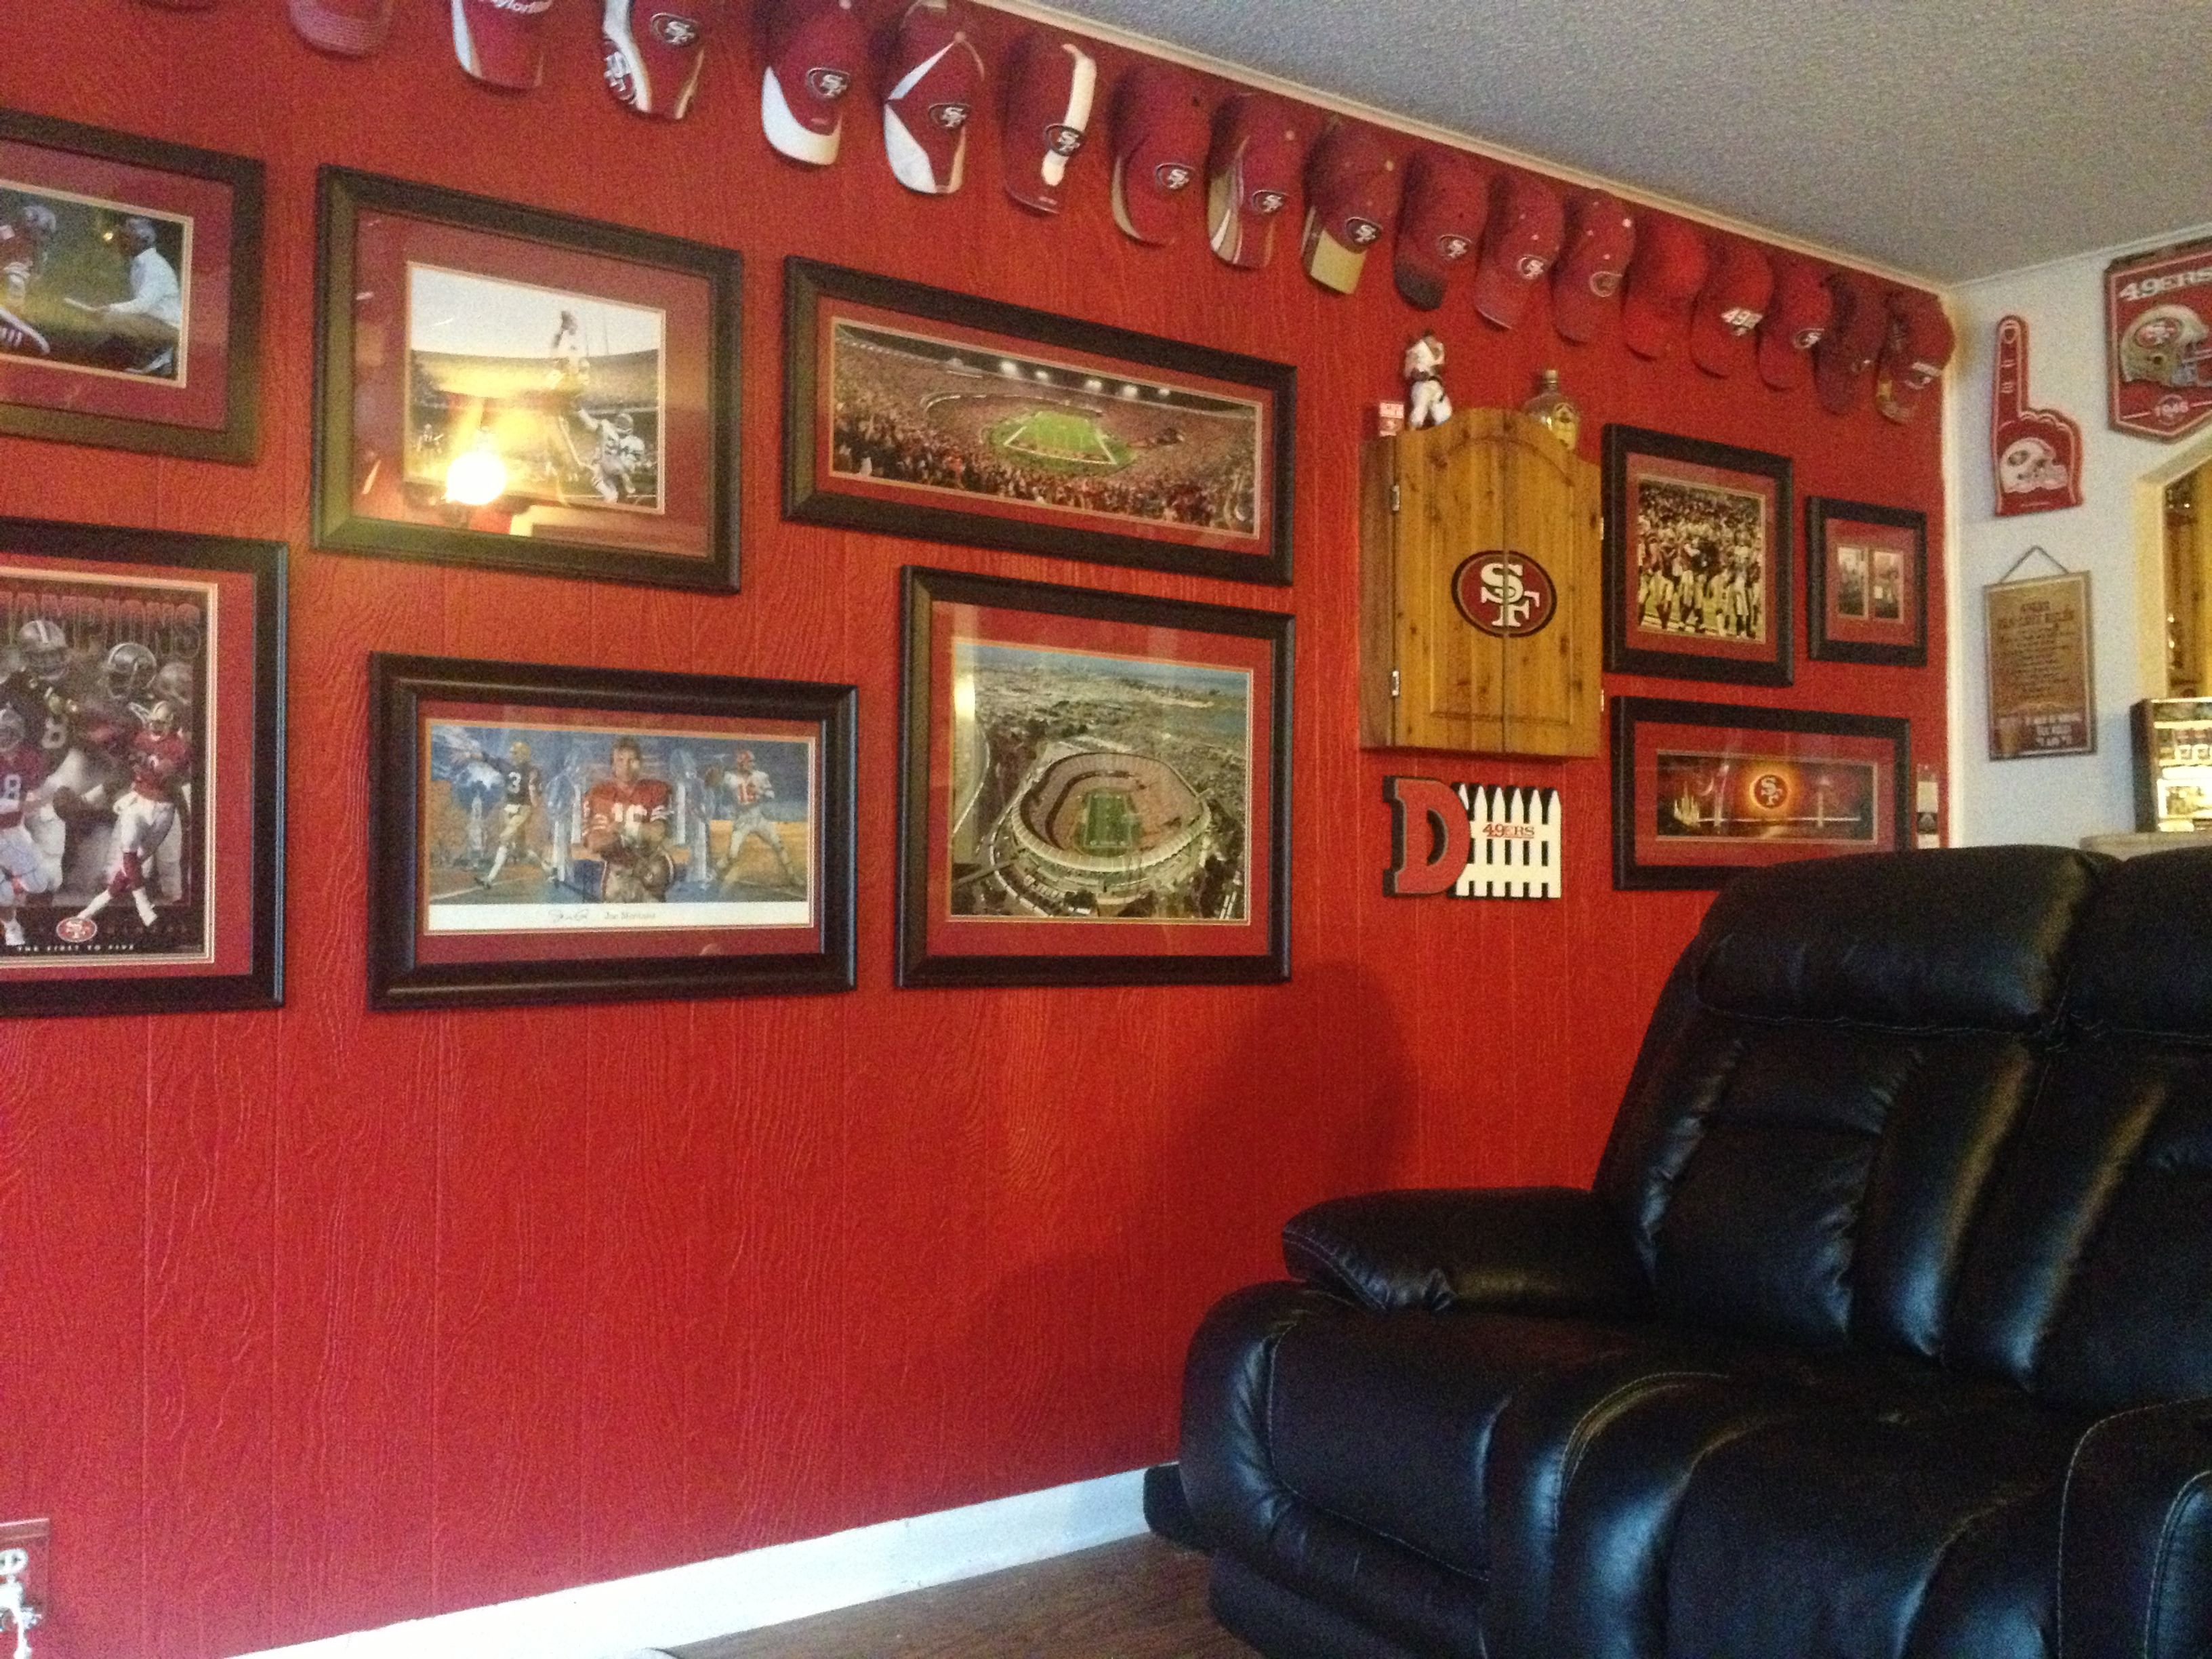 49ers room san francisco 49ers rooms wo man caves for 49ers room decor